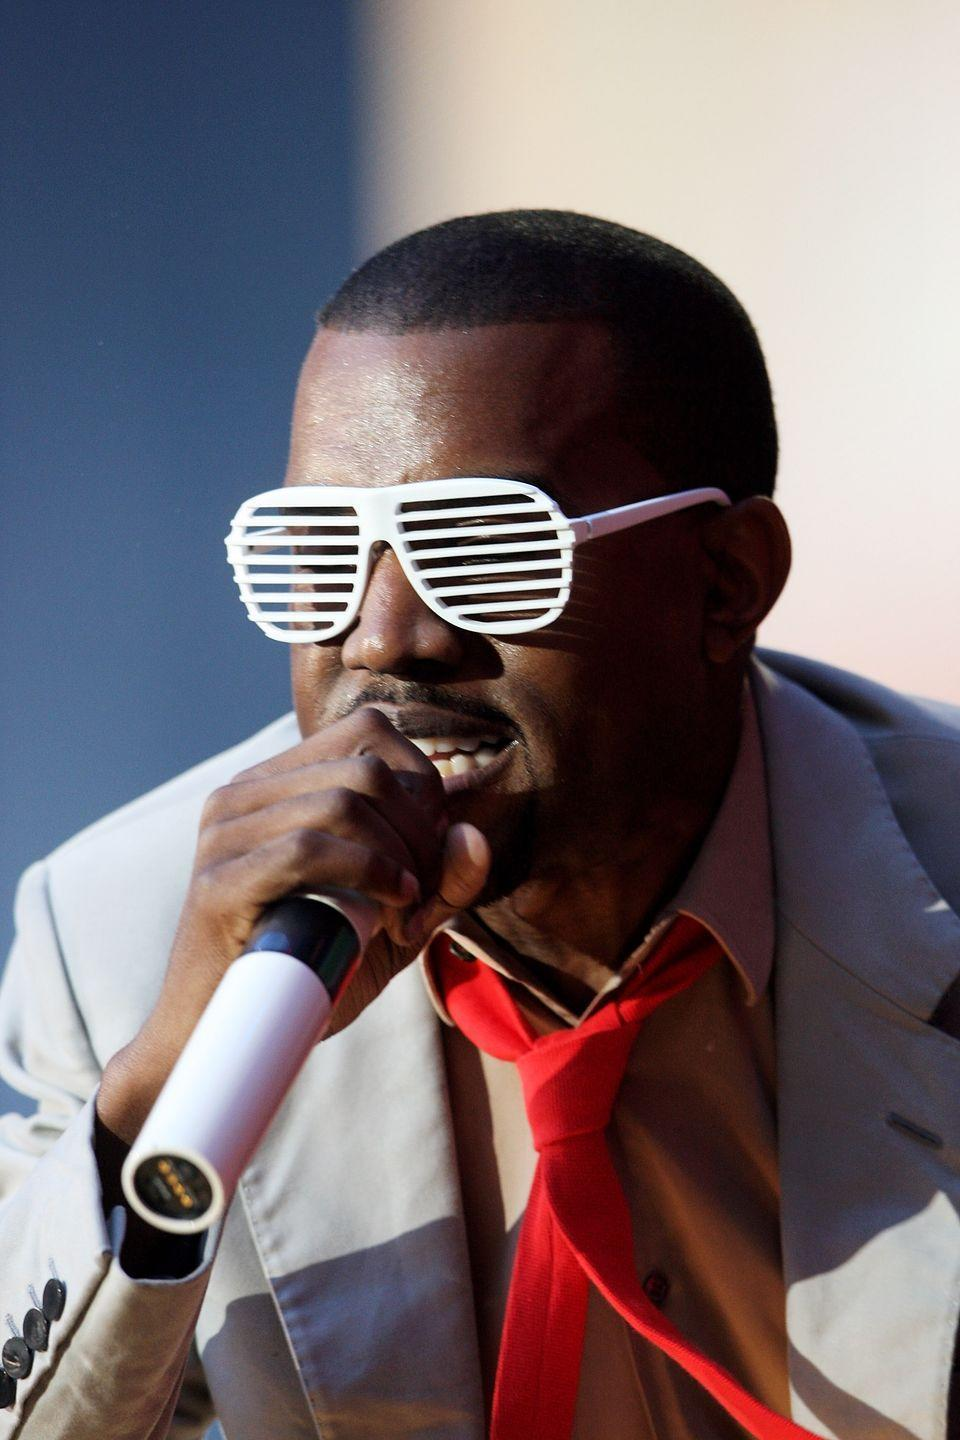 <p>Kayne West helped make shutter shades trendy after wearing them in concert and at award shows. The aviator-type glasses soon became part of his go-to look in the mid-2000s. </p>